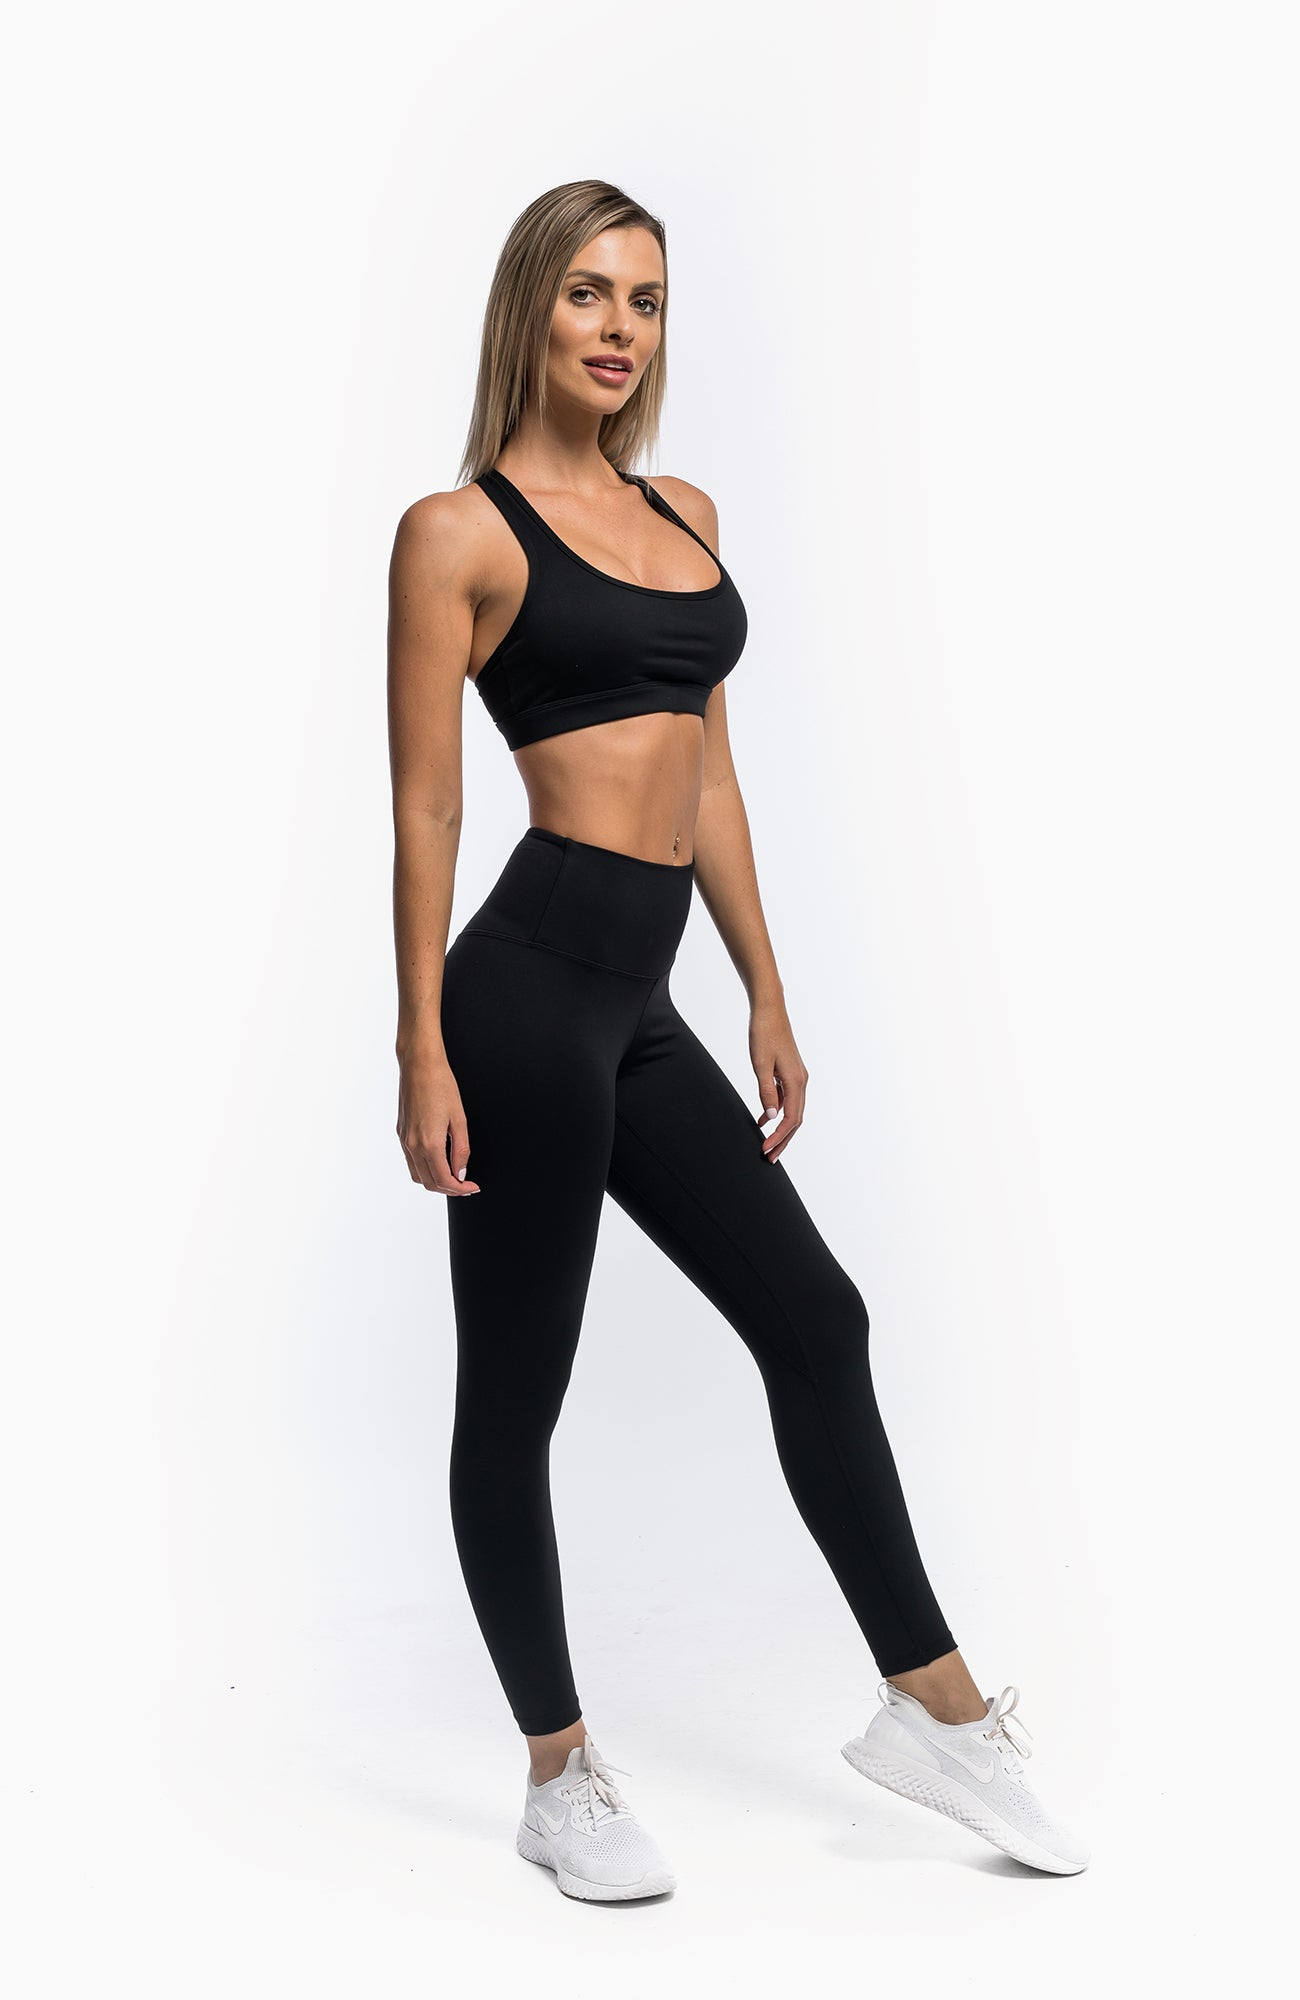 FLOW LEGGINGS - BLACK - hustletics.com